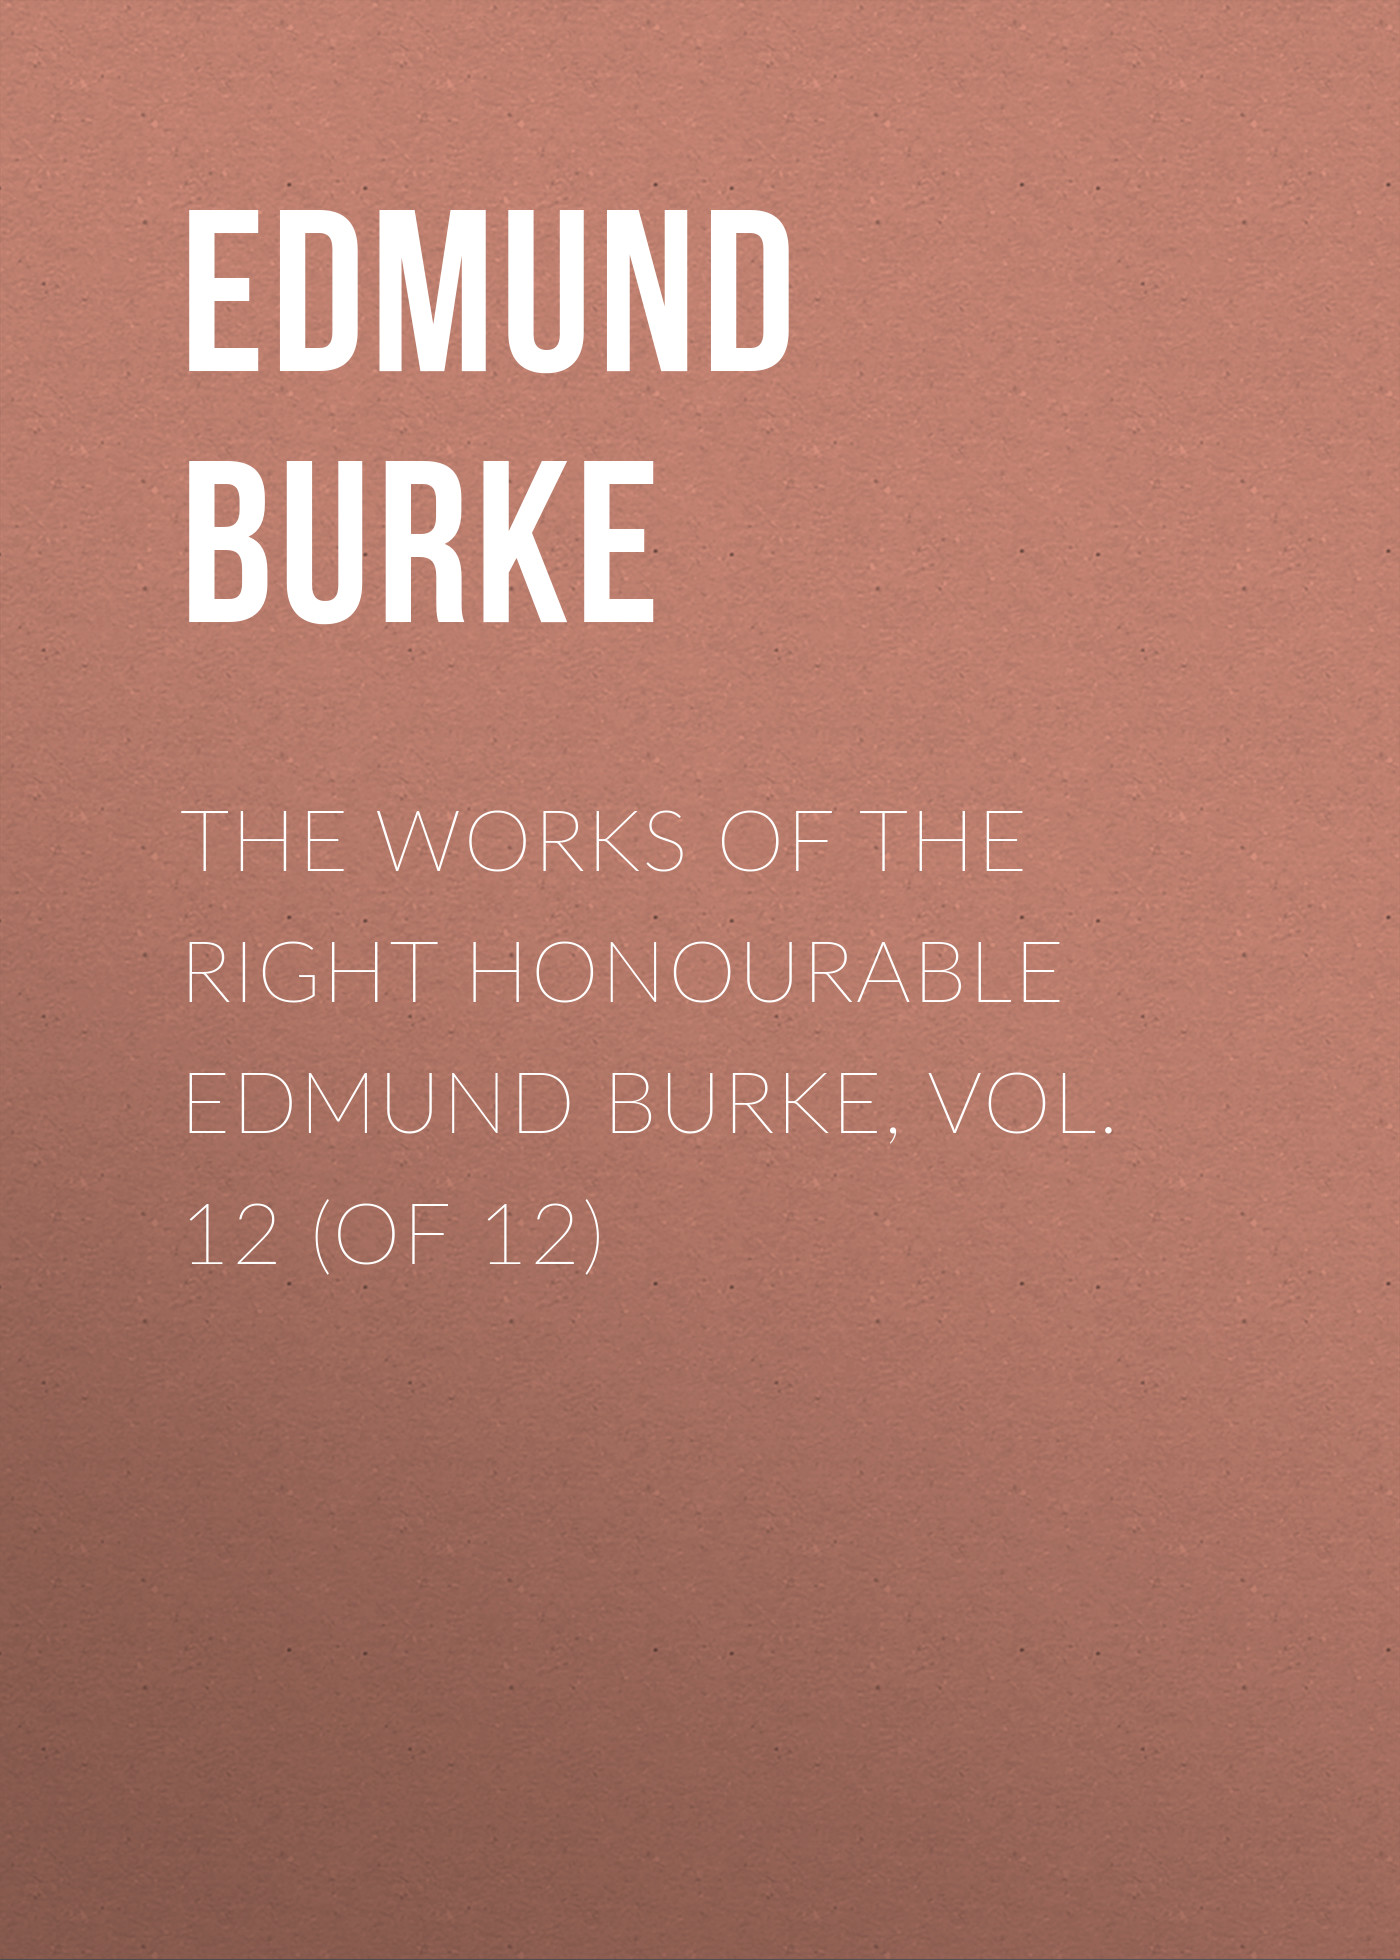 Edmund Burke The Works of the Right Honourable Edmund Burke, Vol. 12 (of 12) burke edmund the speeches of the right honourable edmund burke on the impeachment of warren hastings